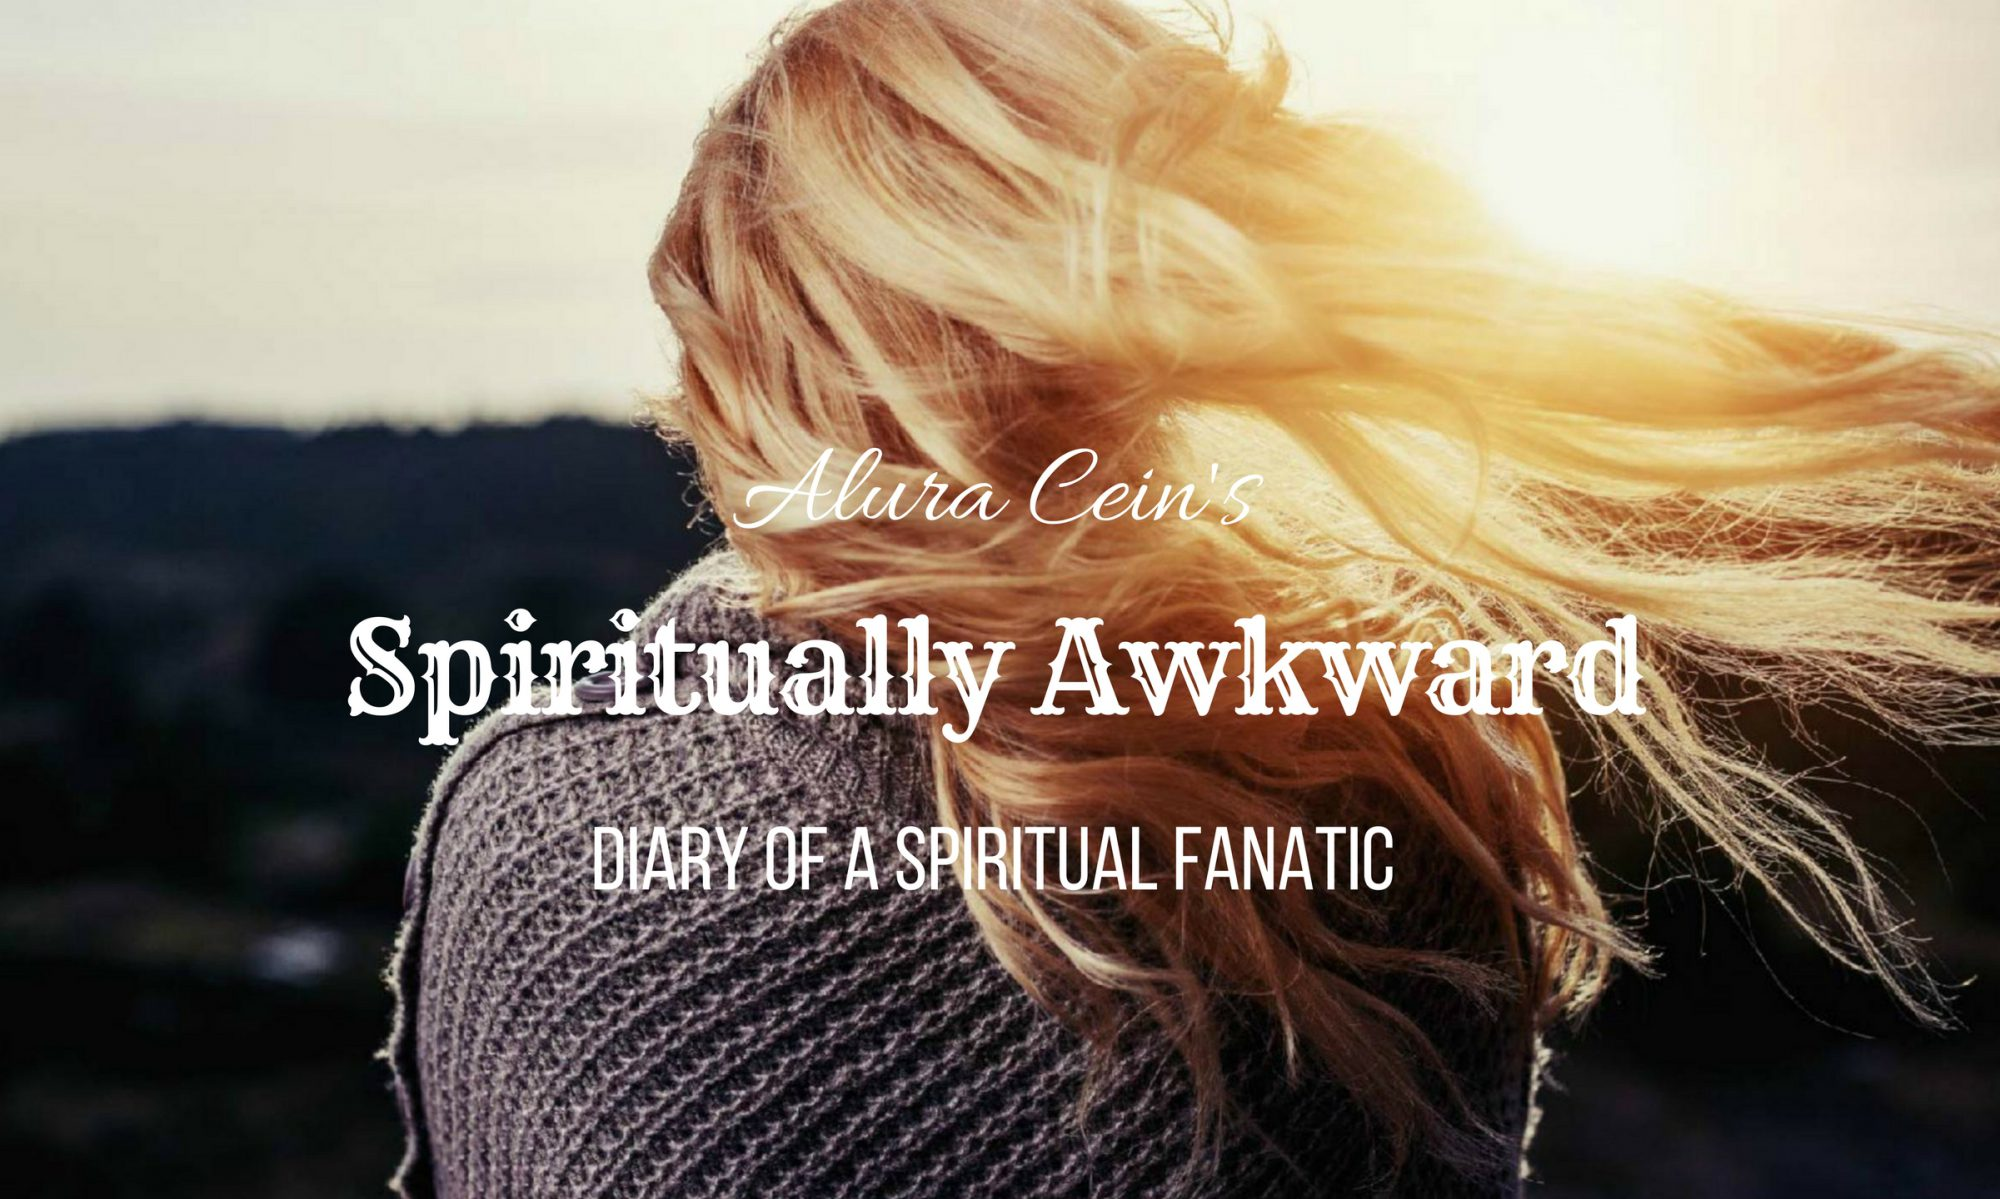 Spiritually Awkward Magazine